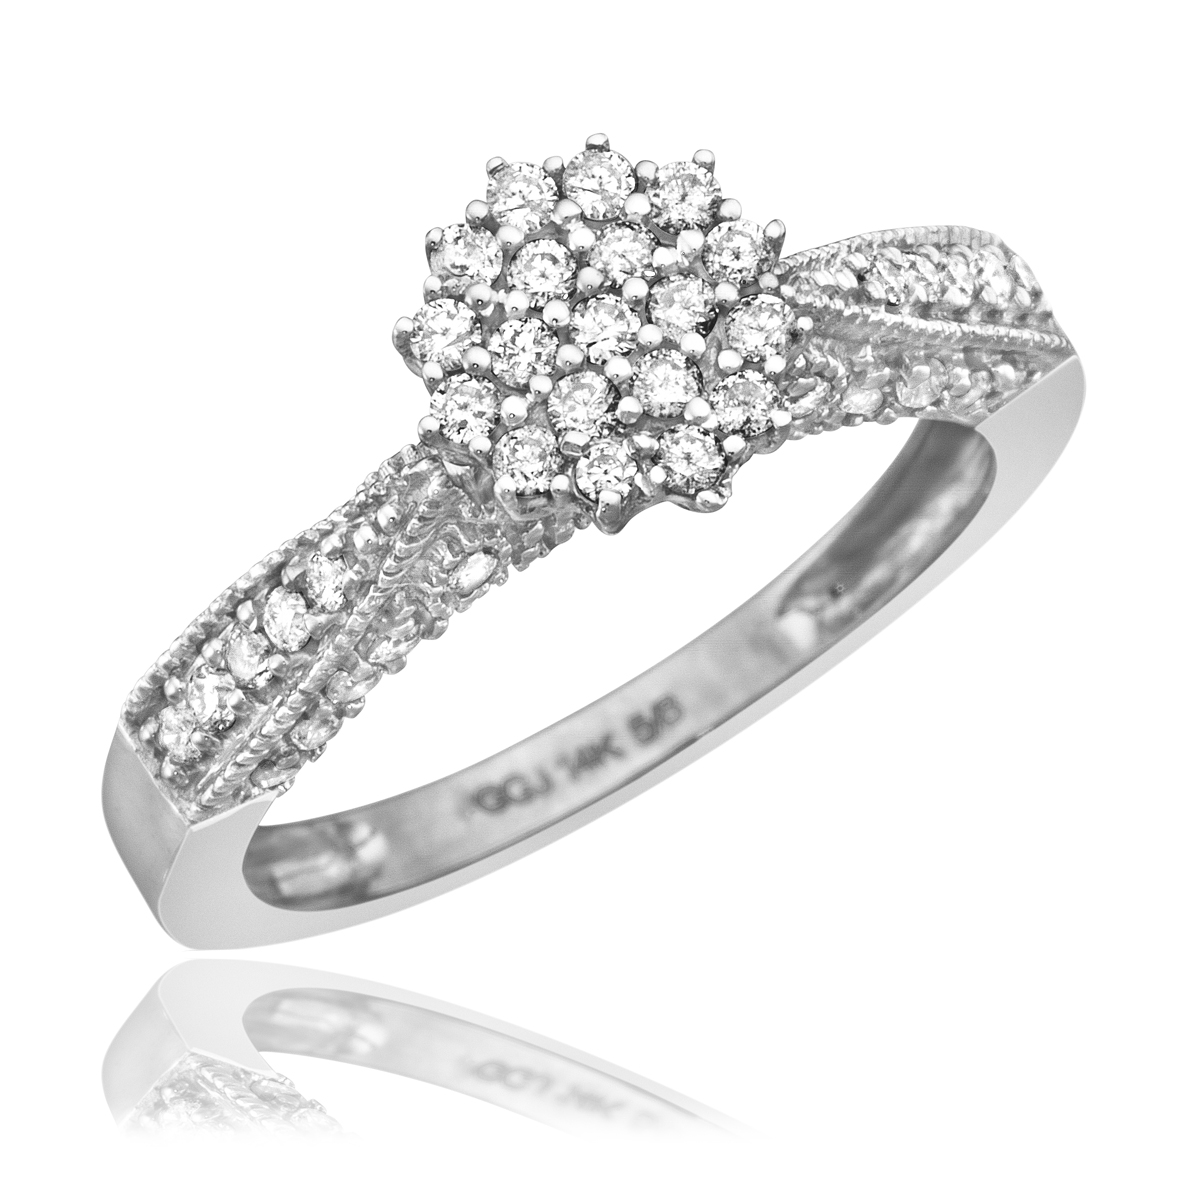 Women39;s Engagement Ring 14K White Gold  My Trio Rings  BT103W14KE